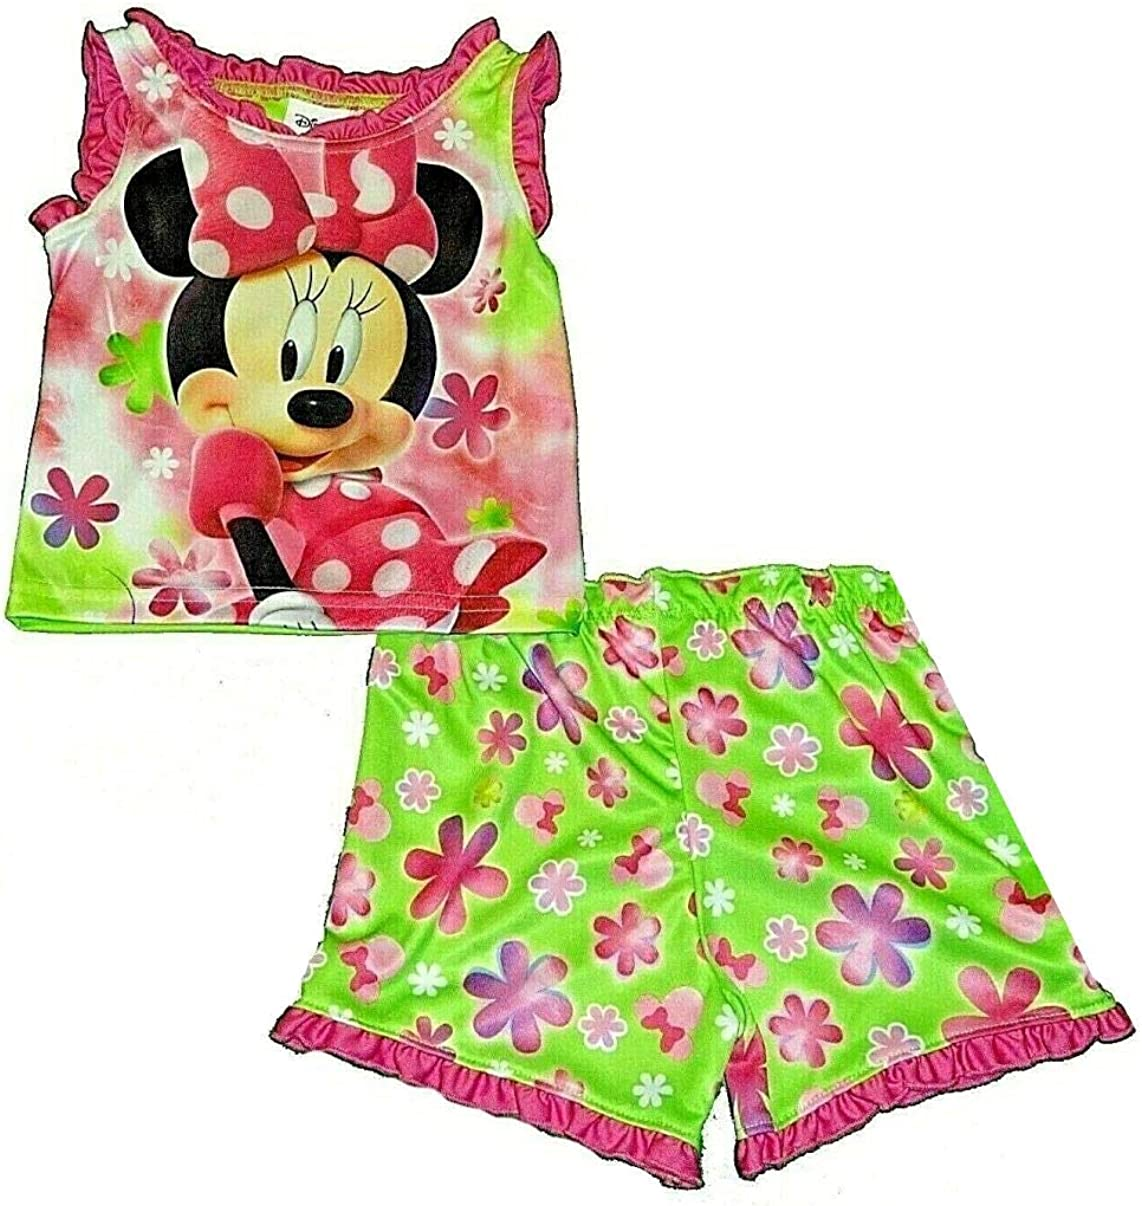 Disney Minnie Mouse Pink, Green Floral Pajama Shorts Set, Size 5T